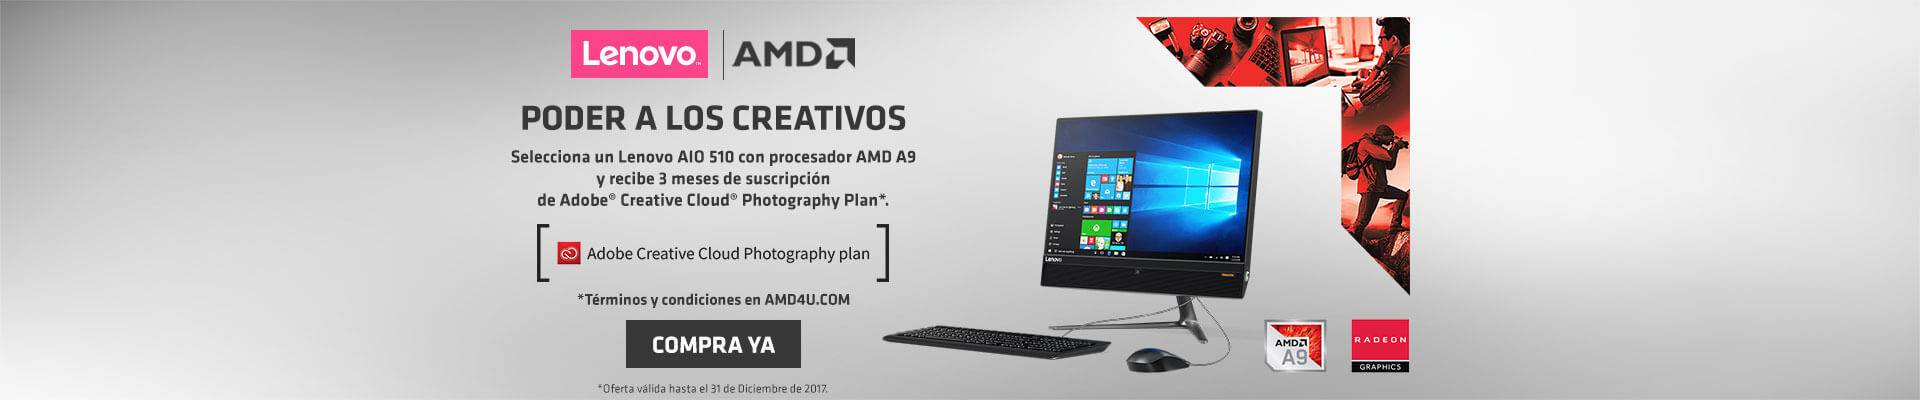 EXP AMD AK- PPAL-9-computadores-PC All in One LENOVO 510 AMD A9 21.5